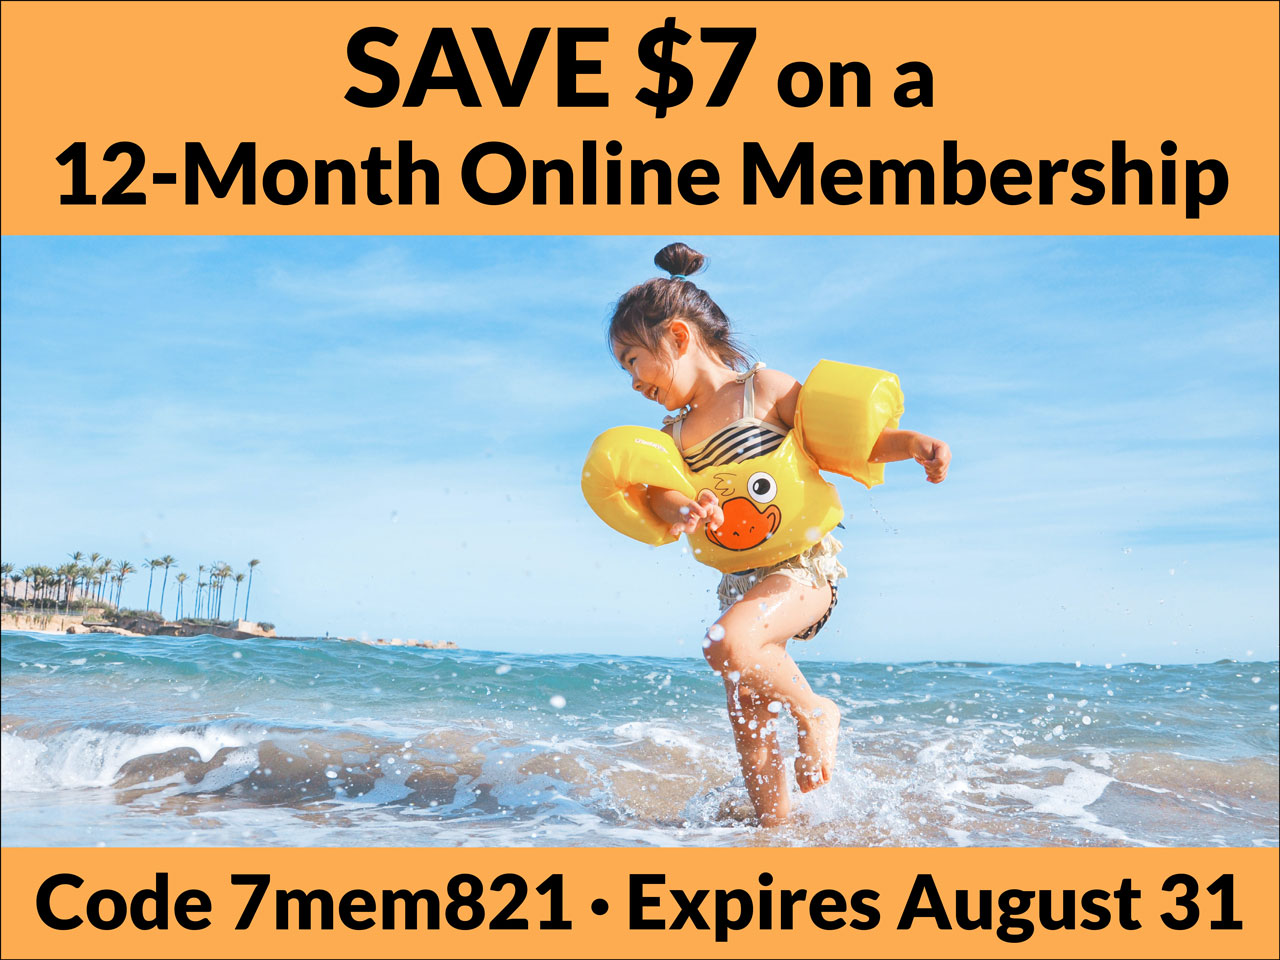 Save $7 on a 12 month online membership